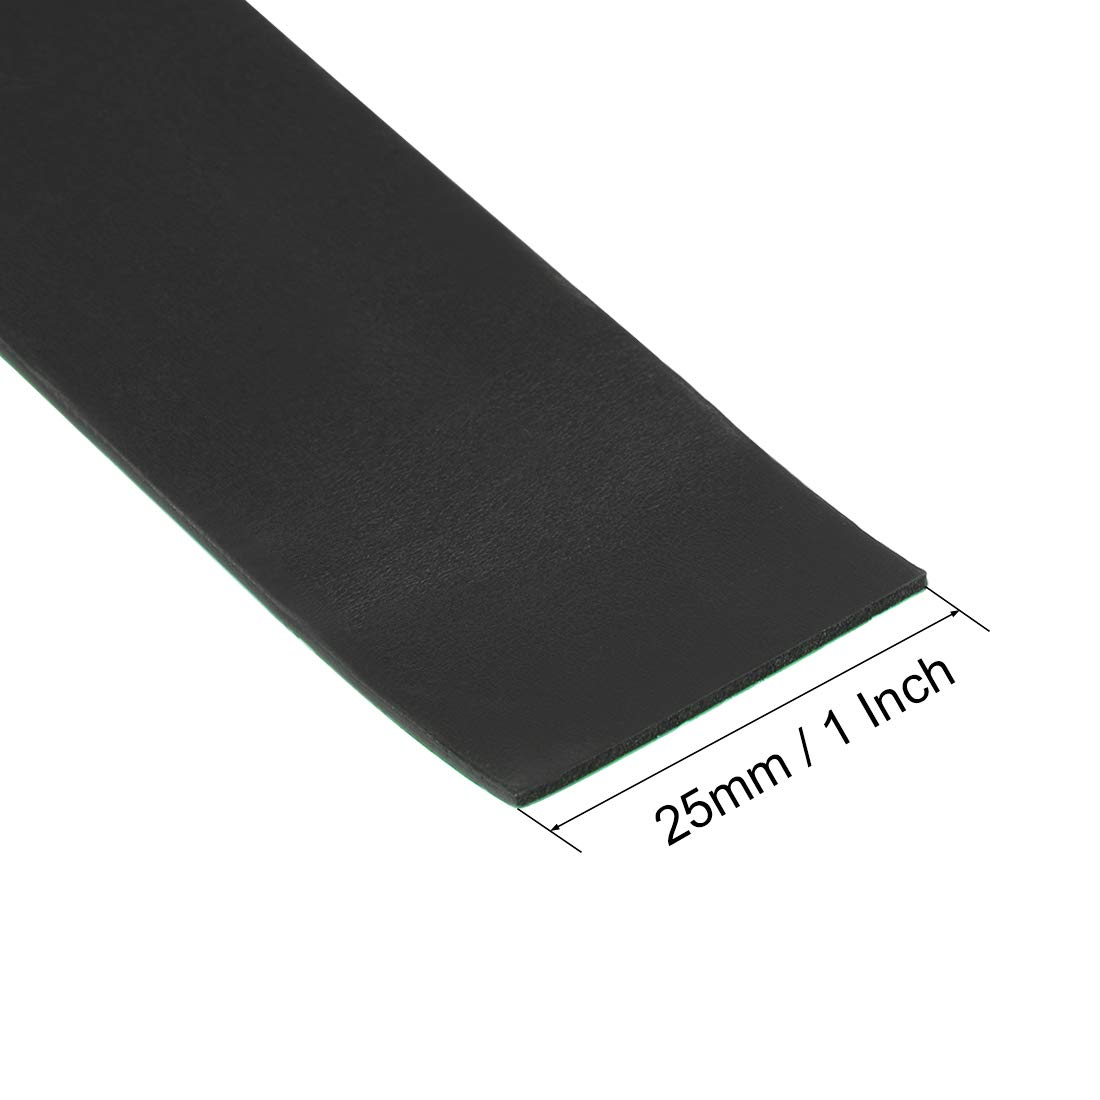 sourcing map 2 Pcs Dry Erase Flexible Magnetic Strip 1 Inch x 3.3 Feet Magnetical Sheet Labels Stickers Writable Black For Whiteboards Refrigerator and Crafts